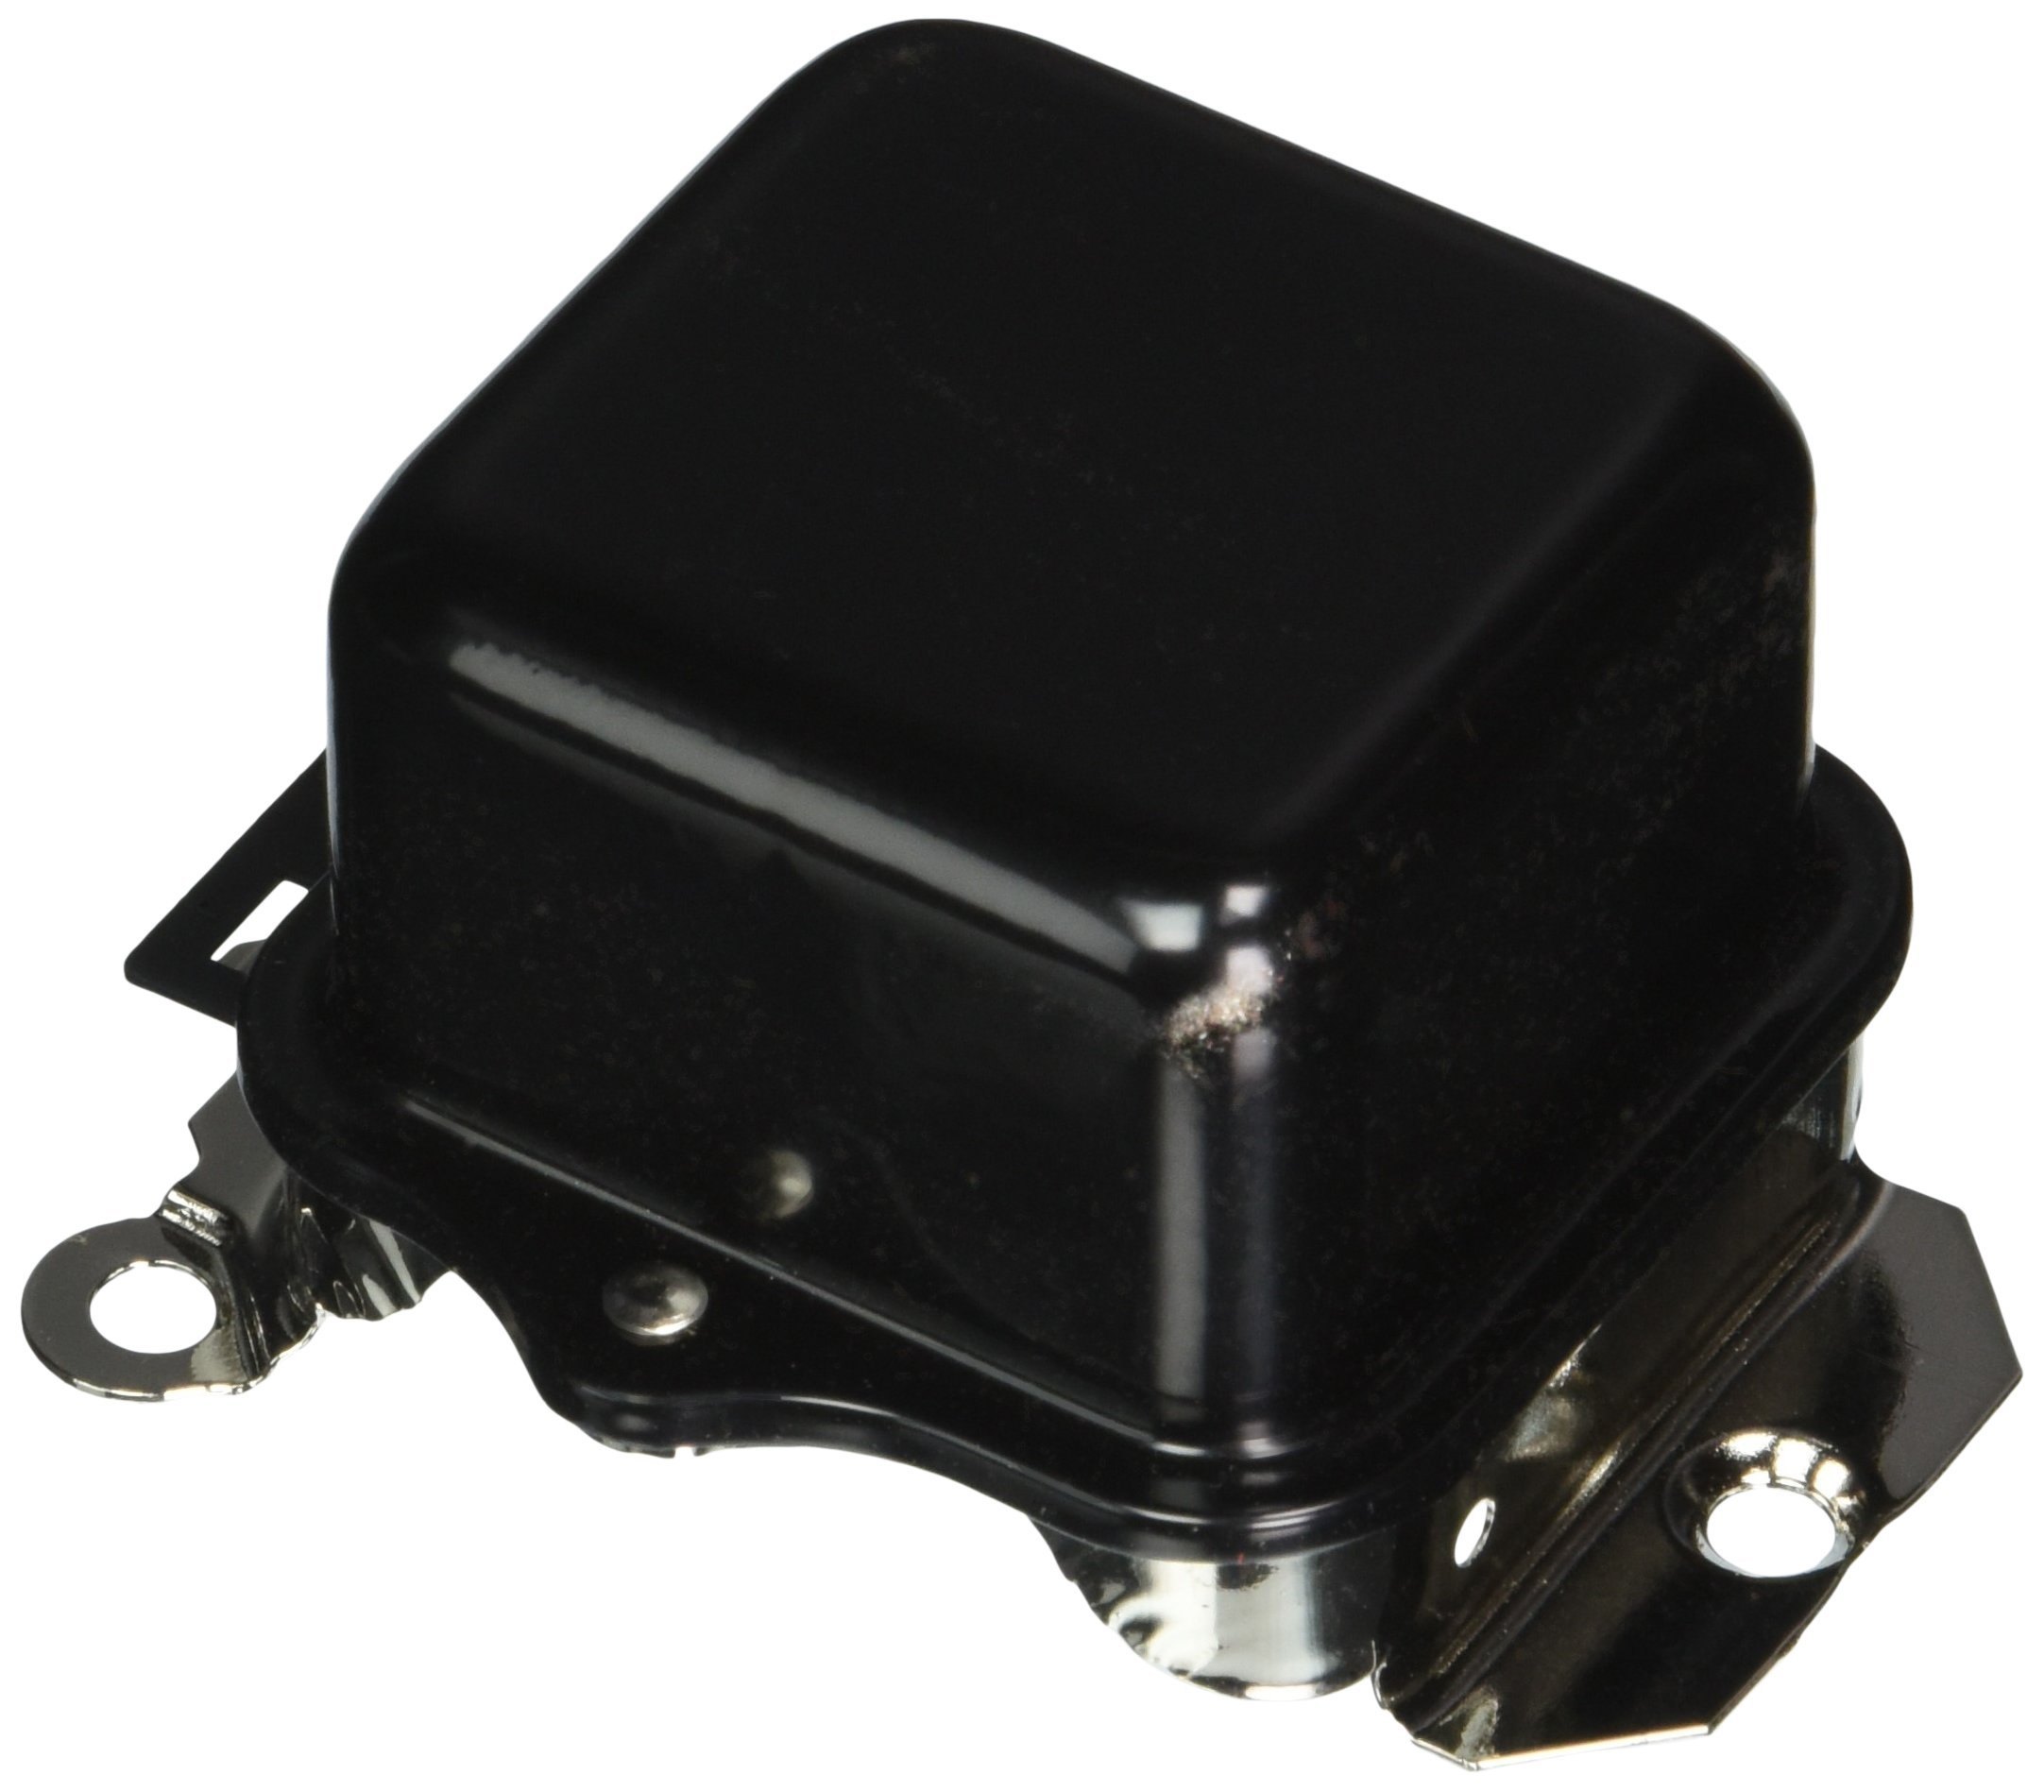 Tru-Tech VR103T Voltage Regulator by Standard Motor Products